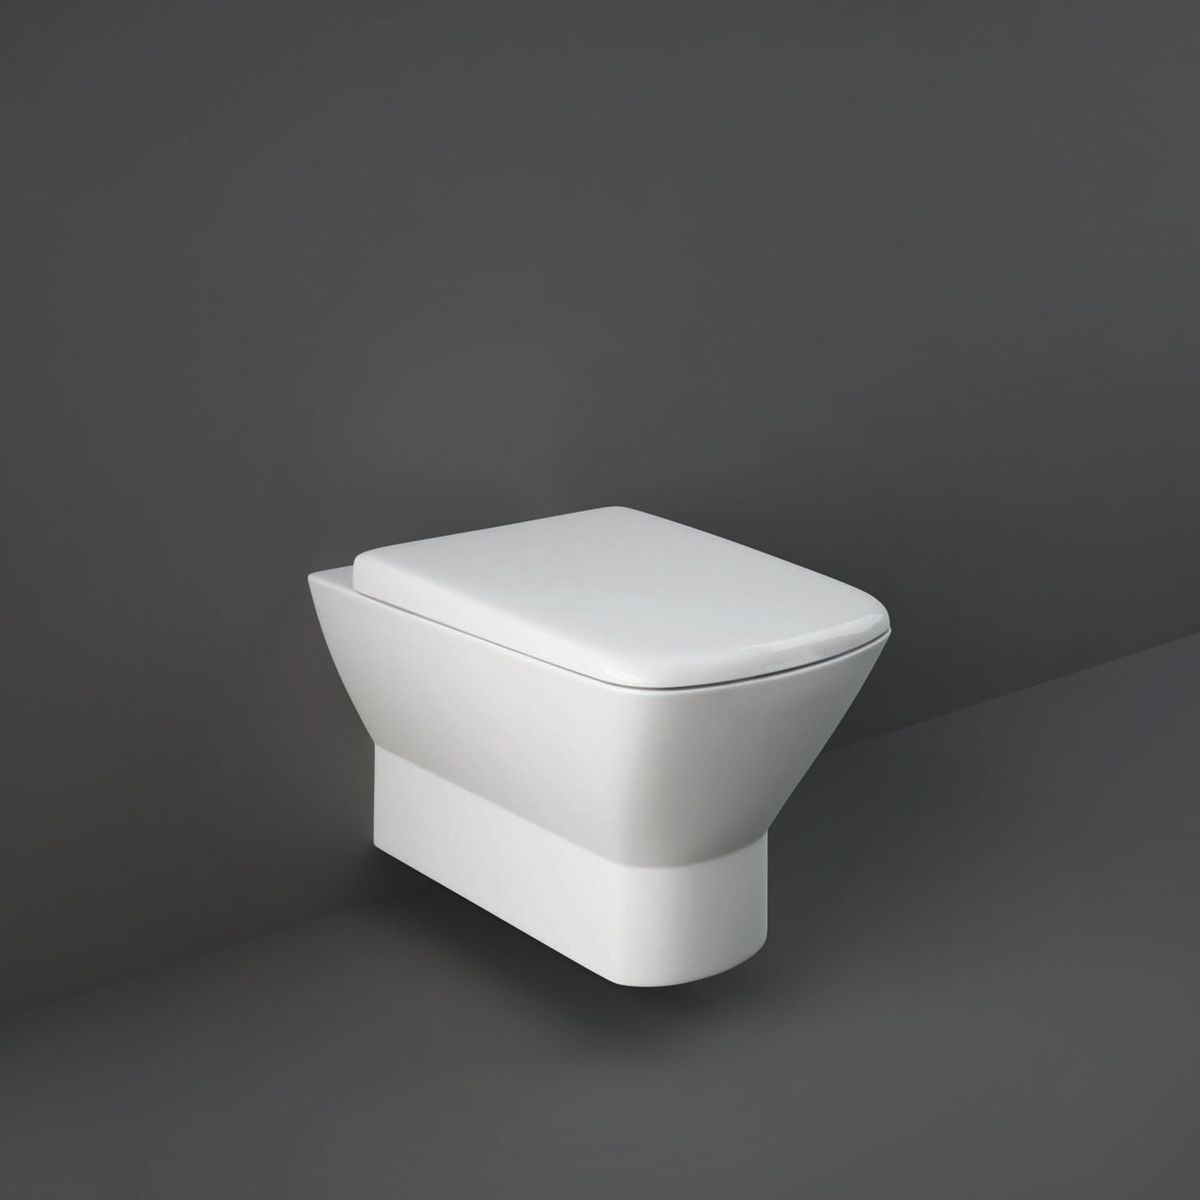 RAK Summit Wall Hung Hidden Fixation Toilet with Wrap Over Soft Close Seat